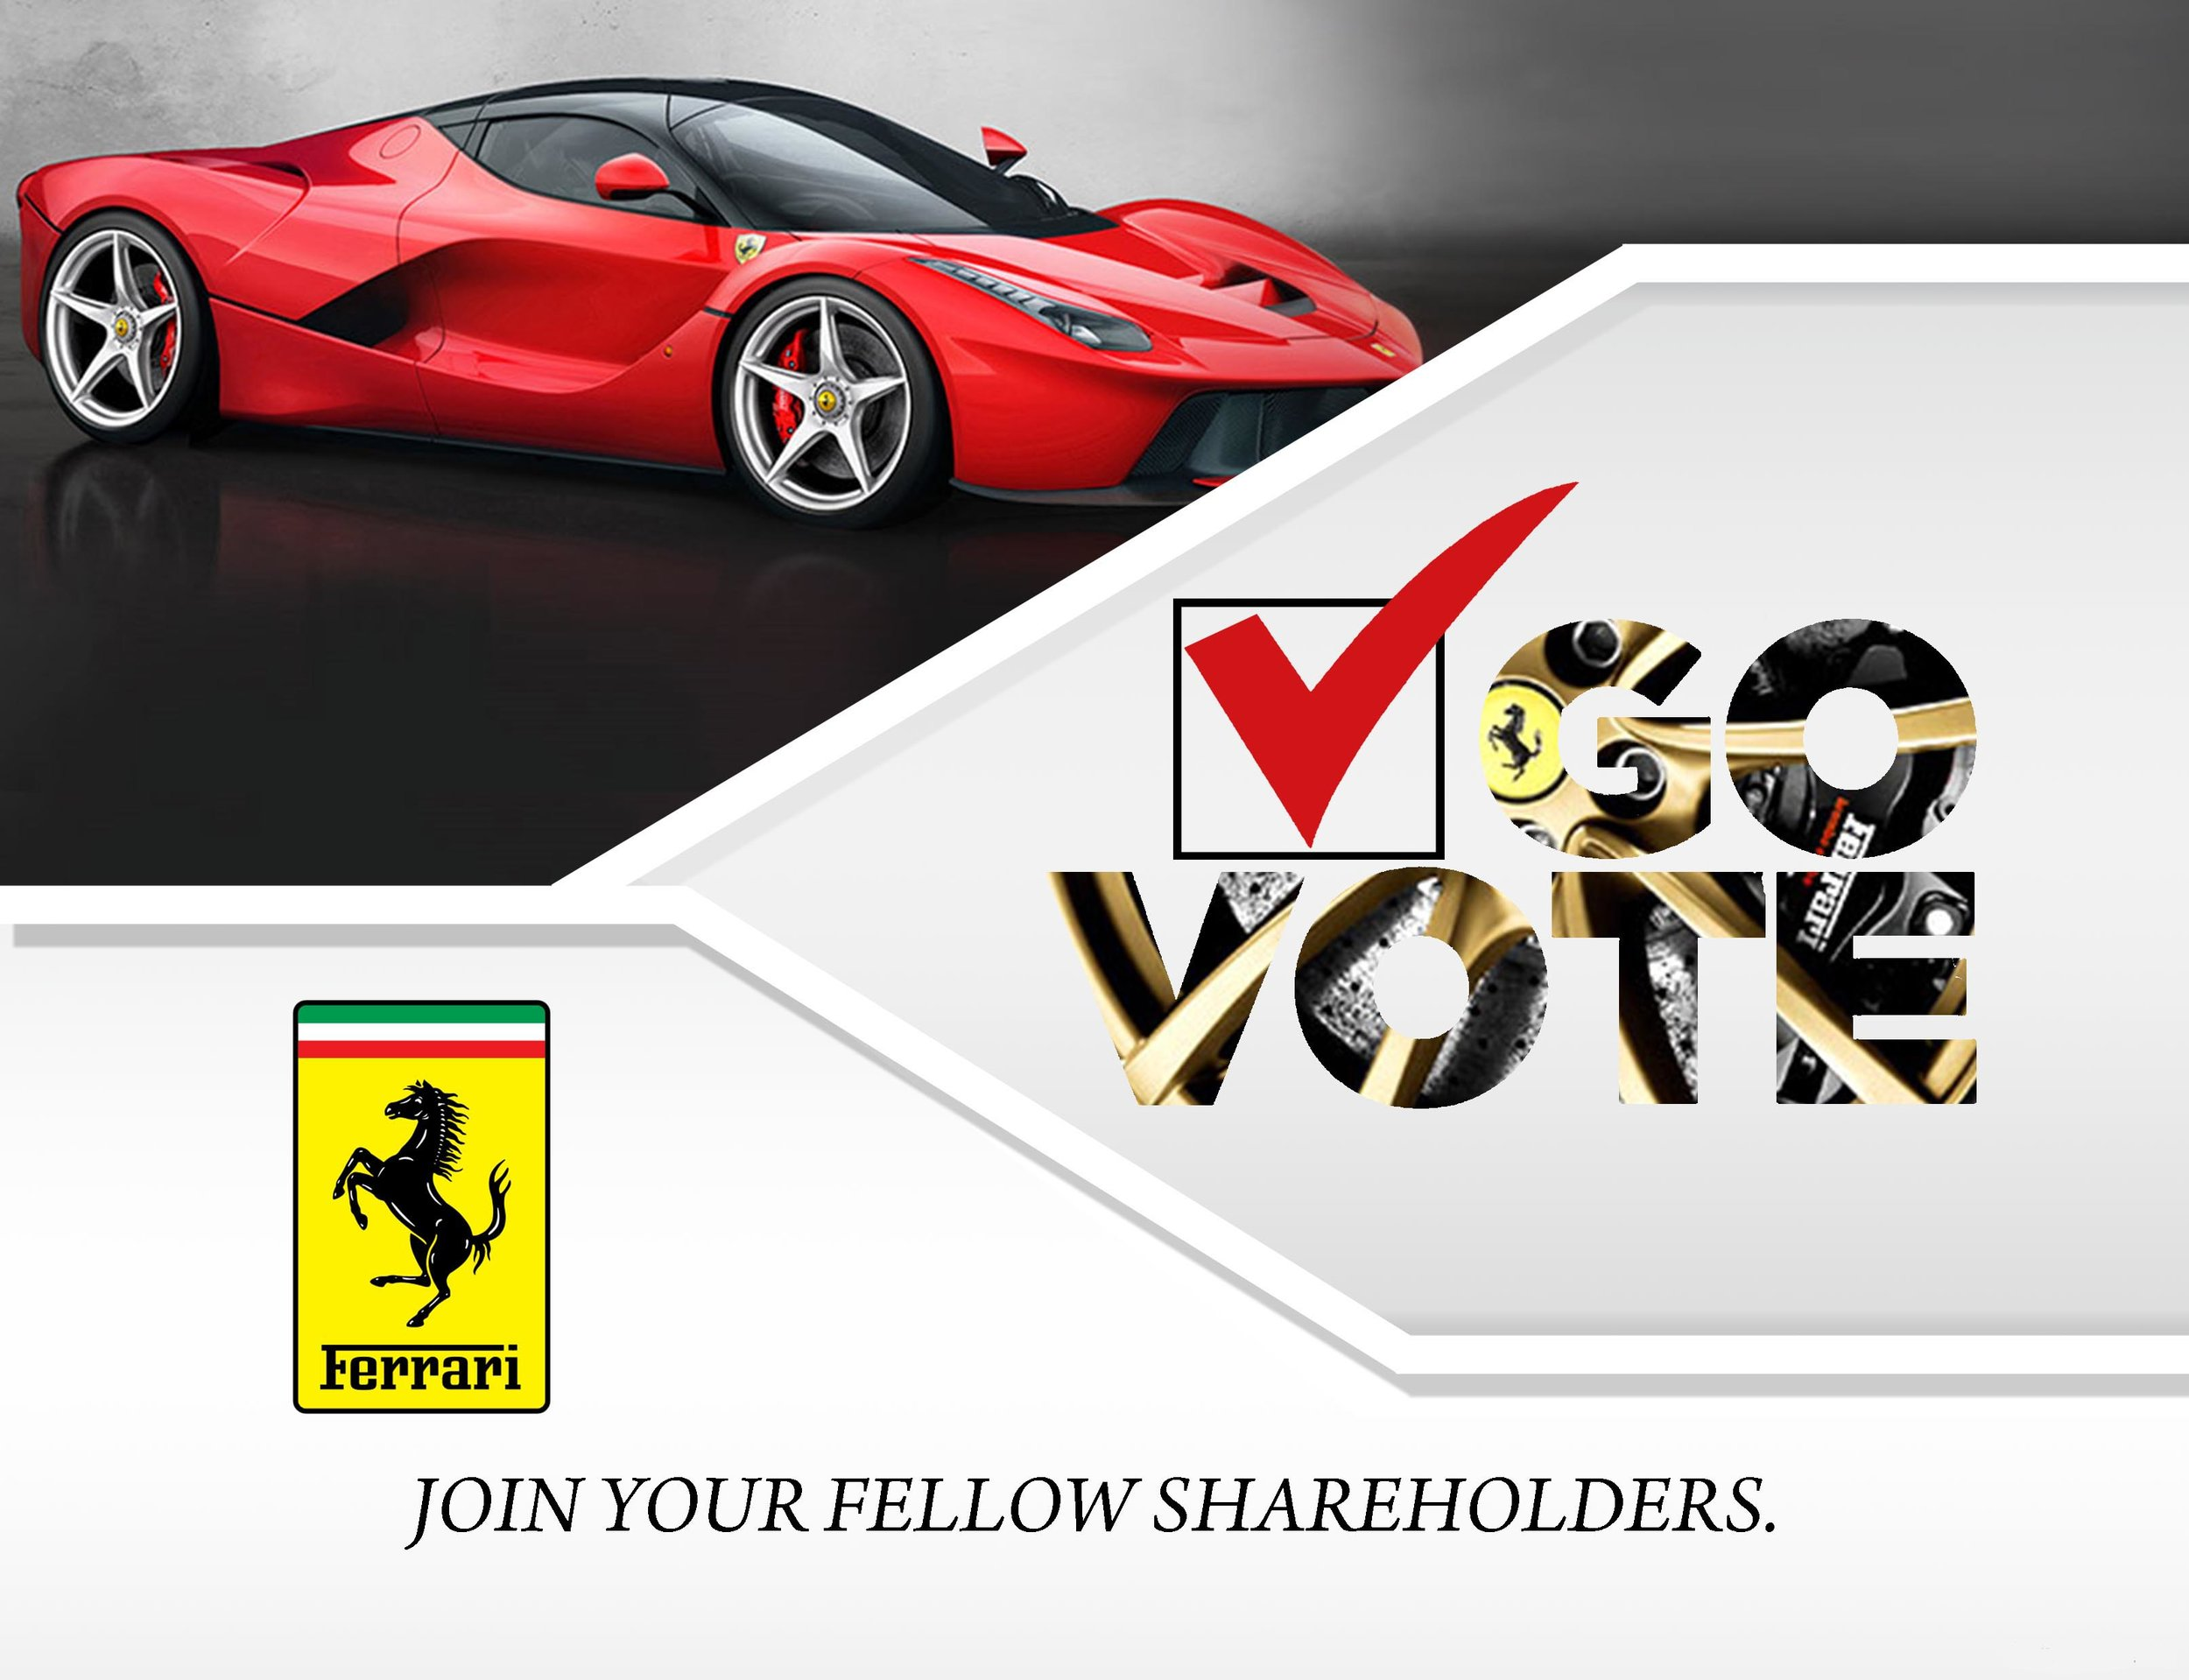 Ferrari_Enhanced Full Page Clear Poly_LOW RES.jpg